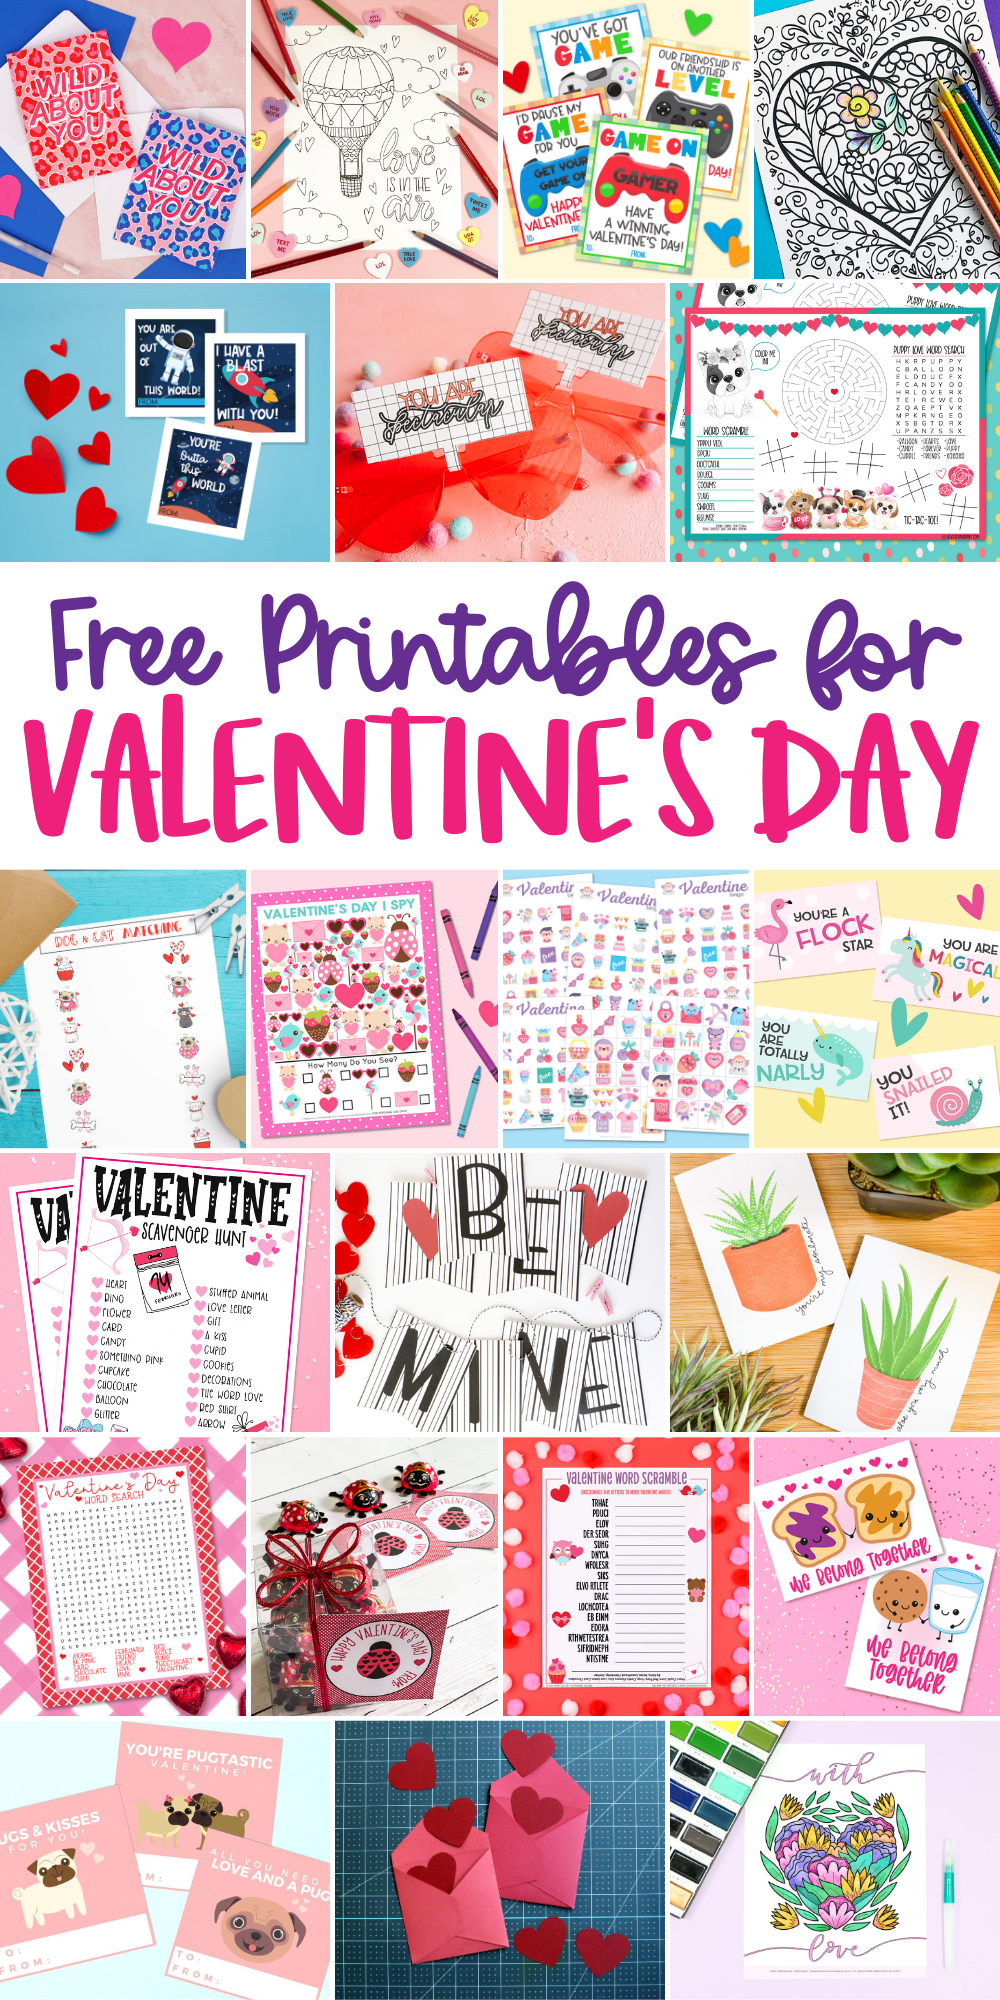 A collection of 21 free Valentine's Day printables